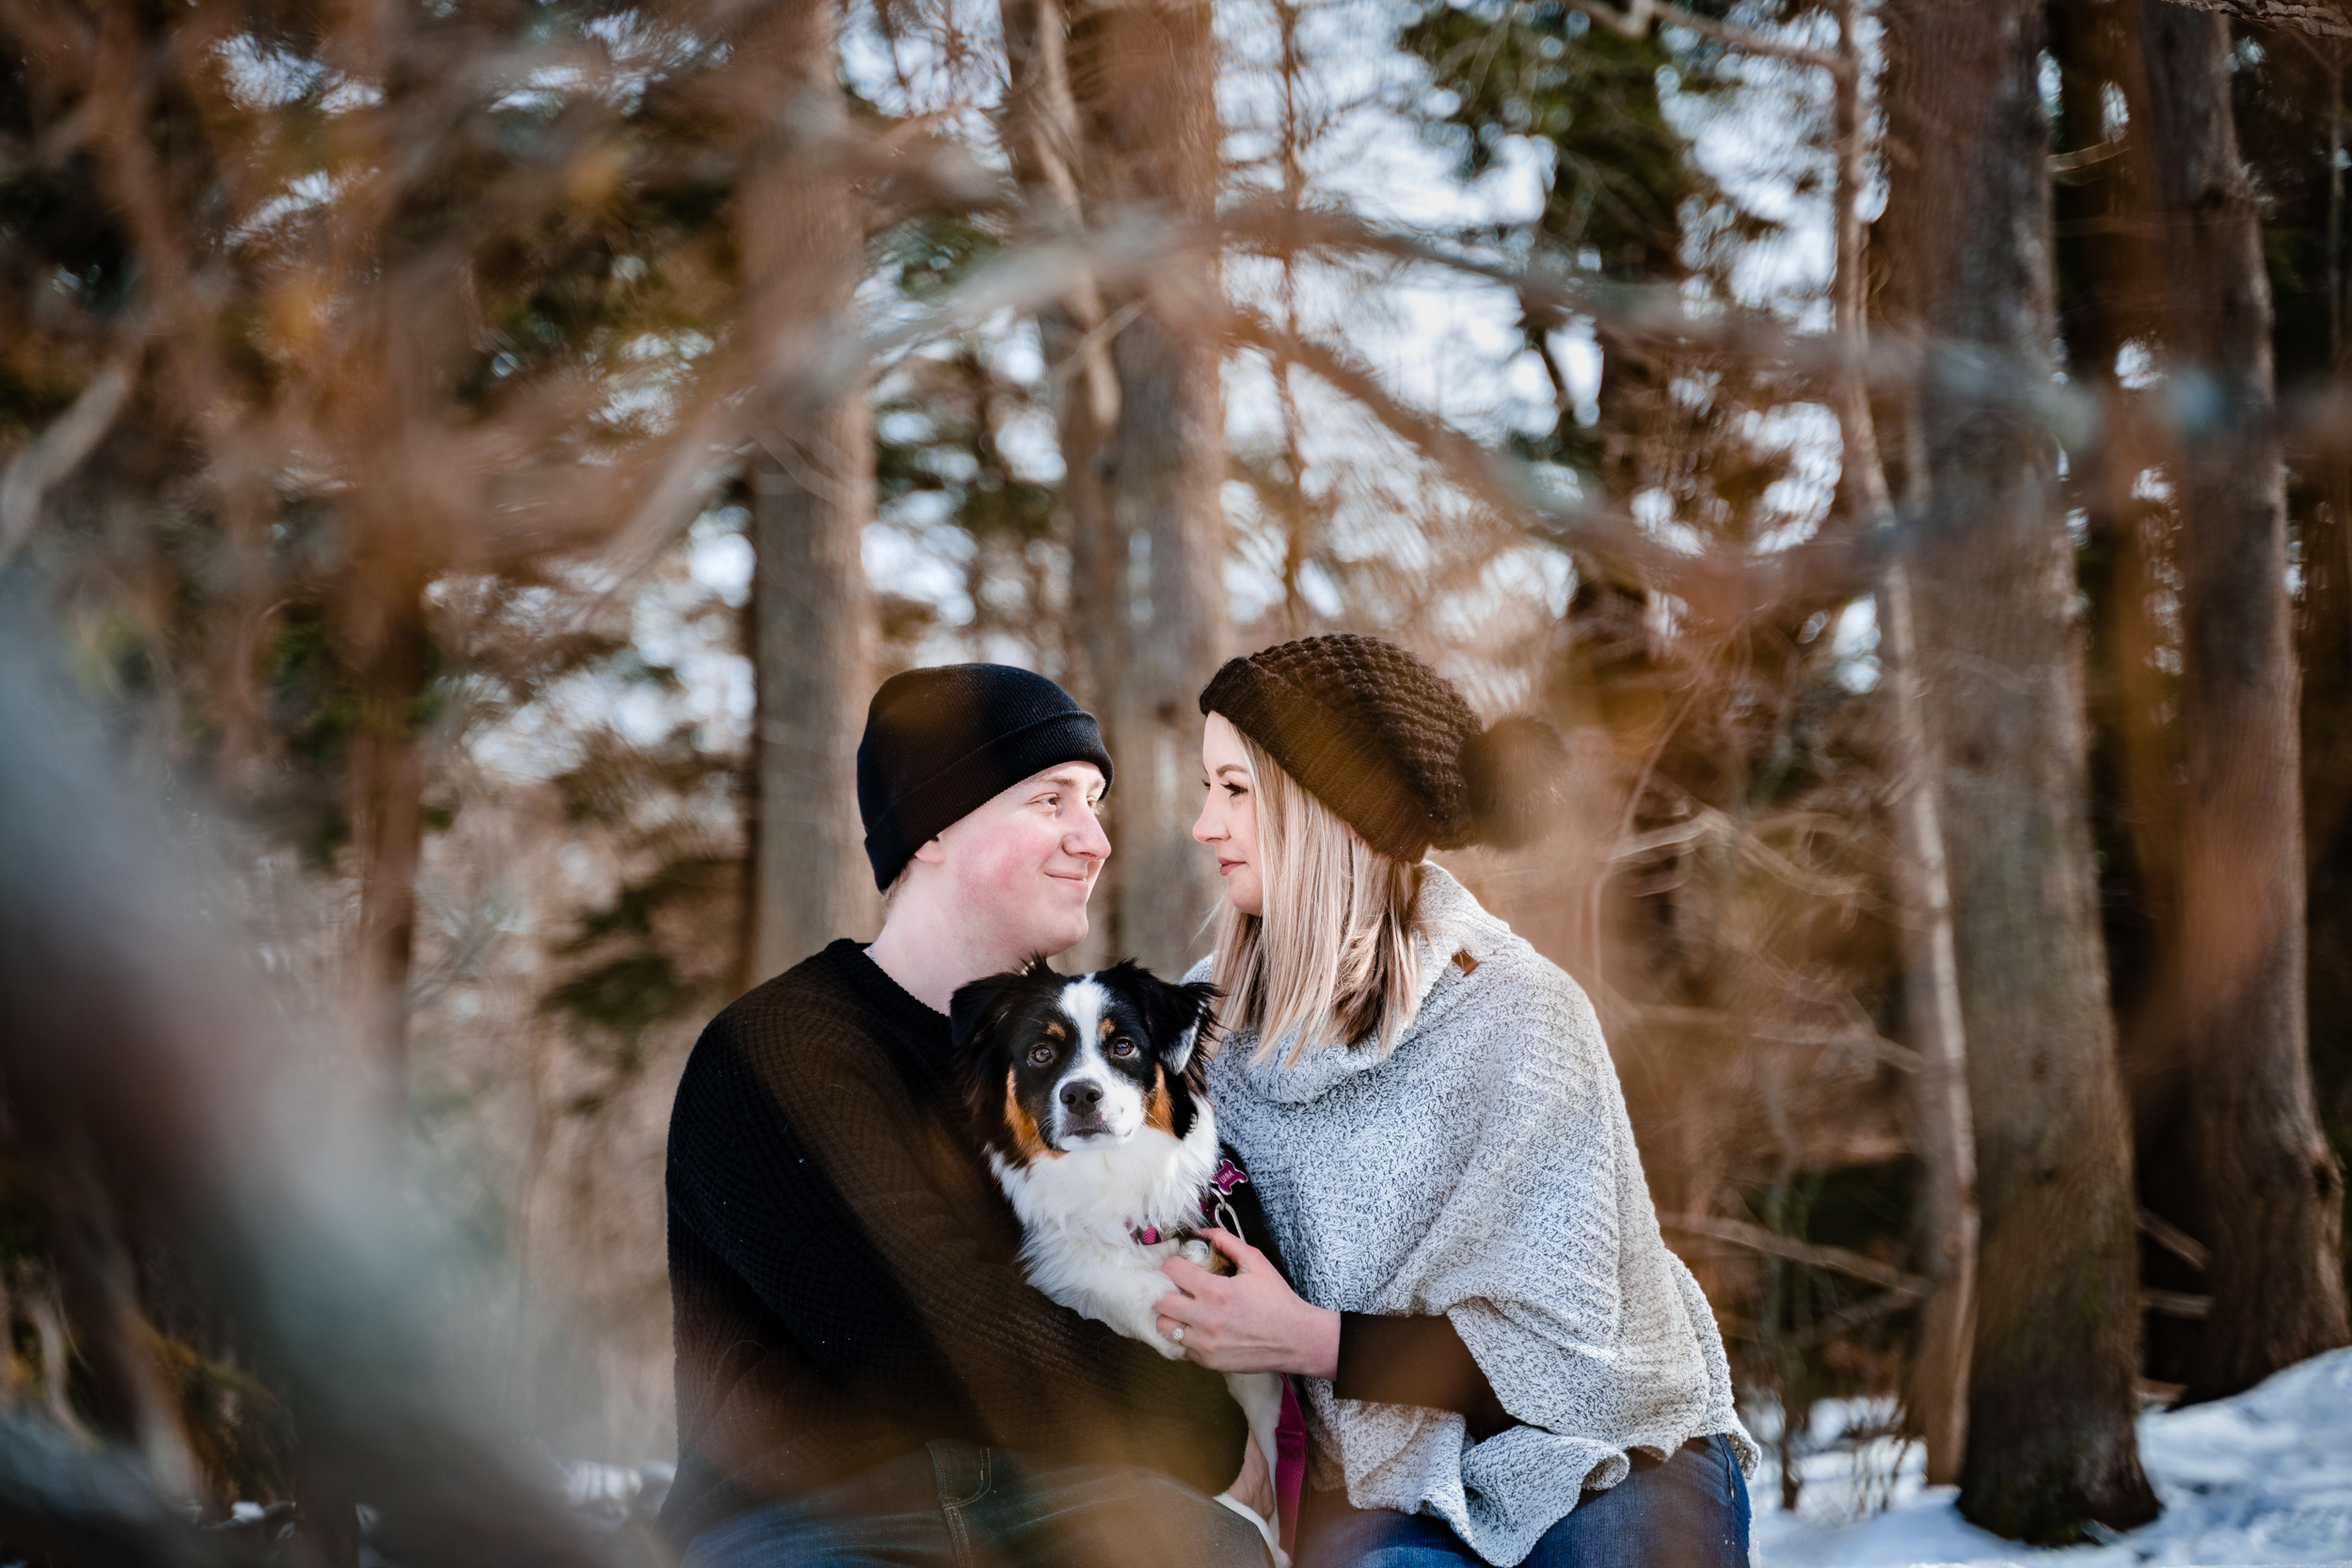 Haley&Brandon (12 of 64)halifax-novascotia-engagementphotography-wedding-foxandfellow-Ottawa-winter.jpg